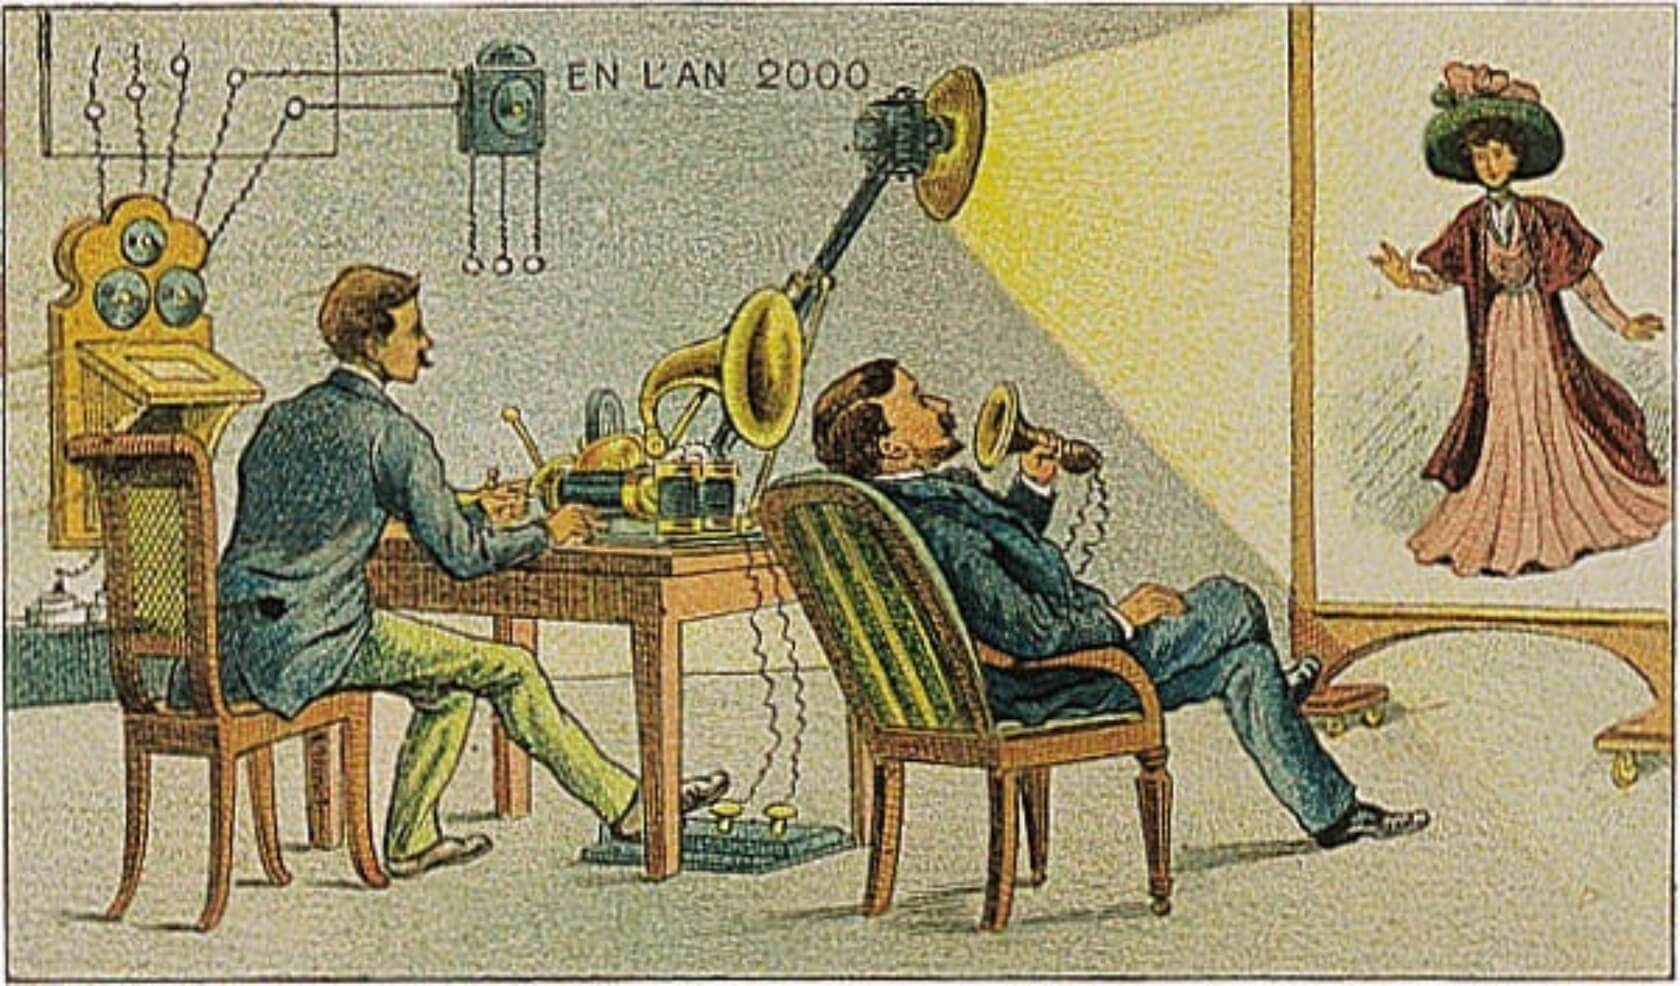 Vintage Video-Telephony by French Artist ca. 1900